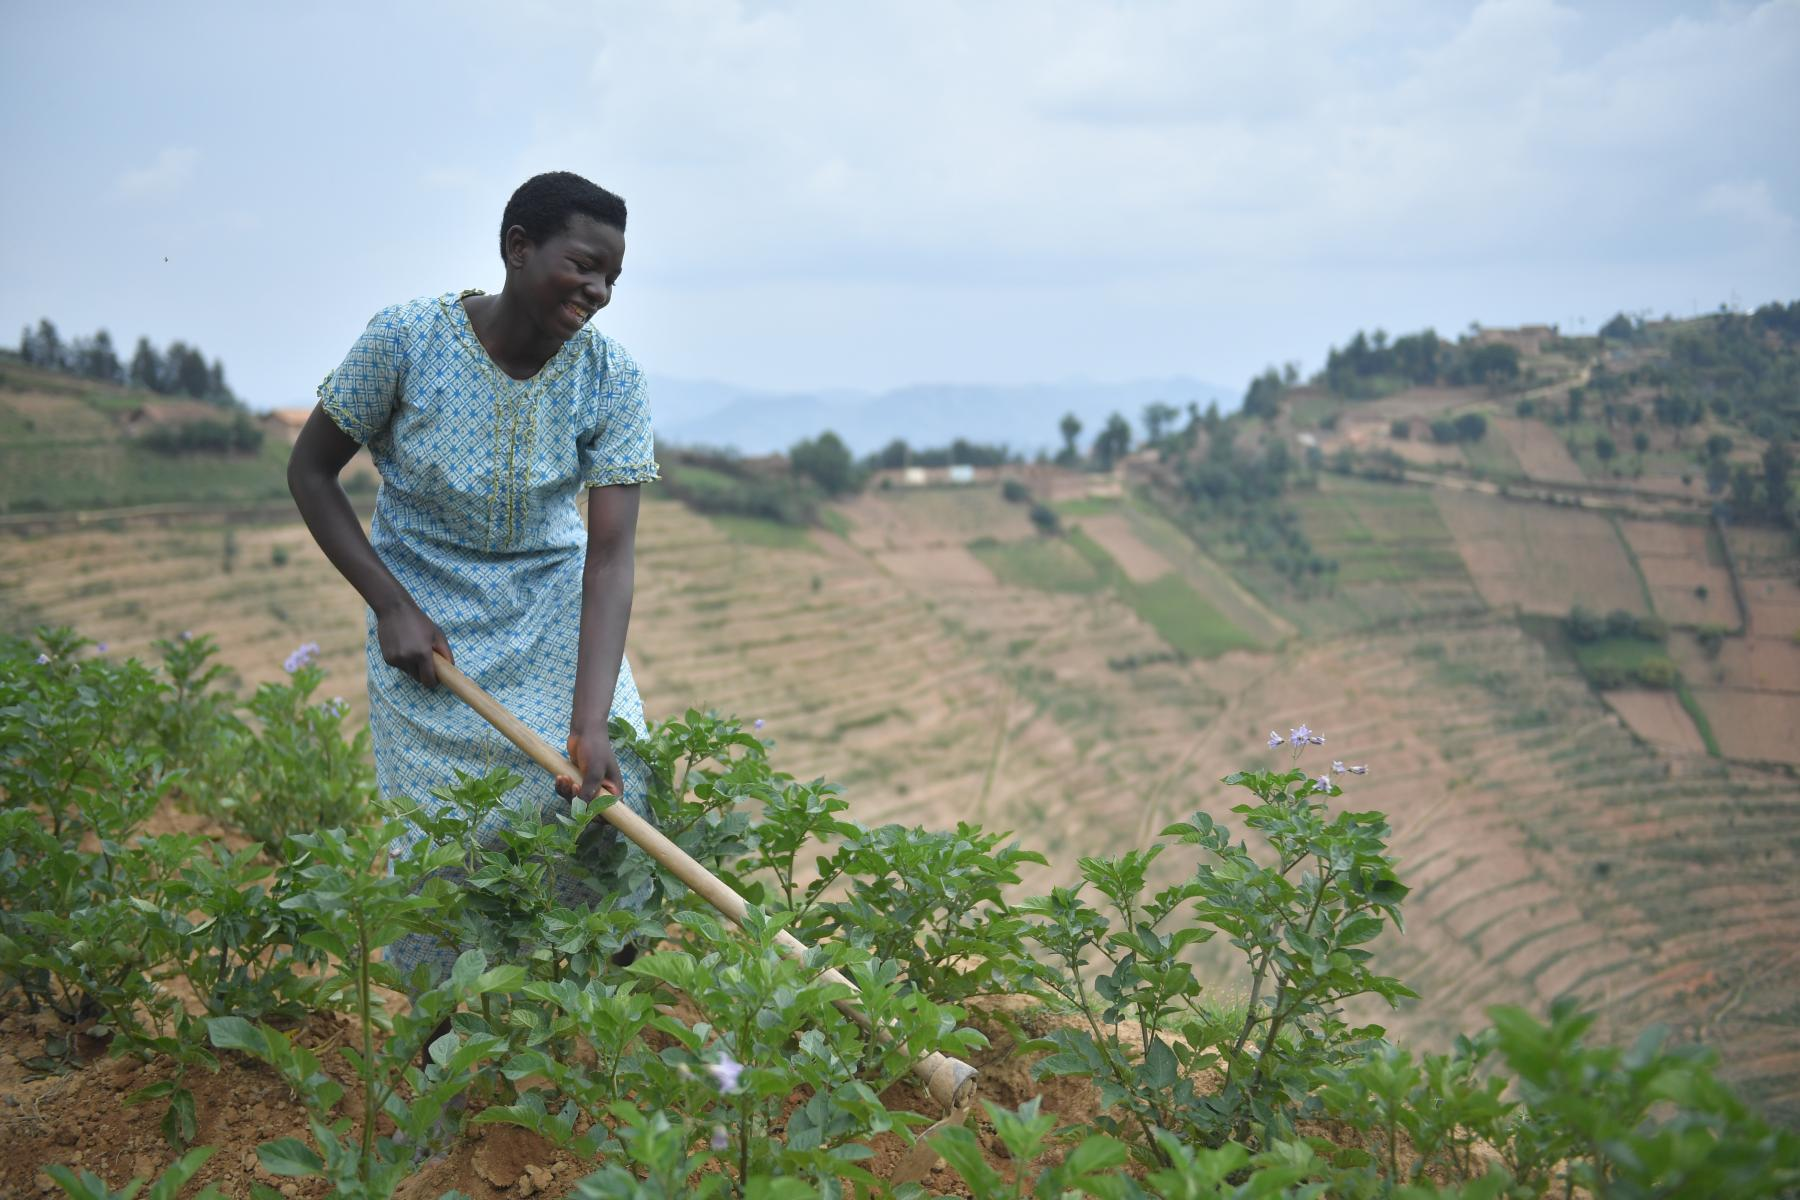 A woman stands on the edge of a high terraced field with a hoe in hand.